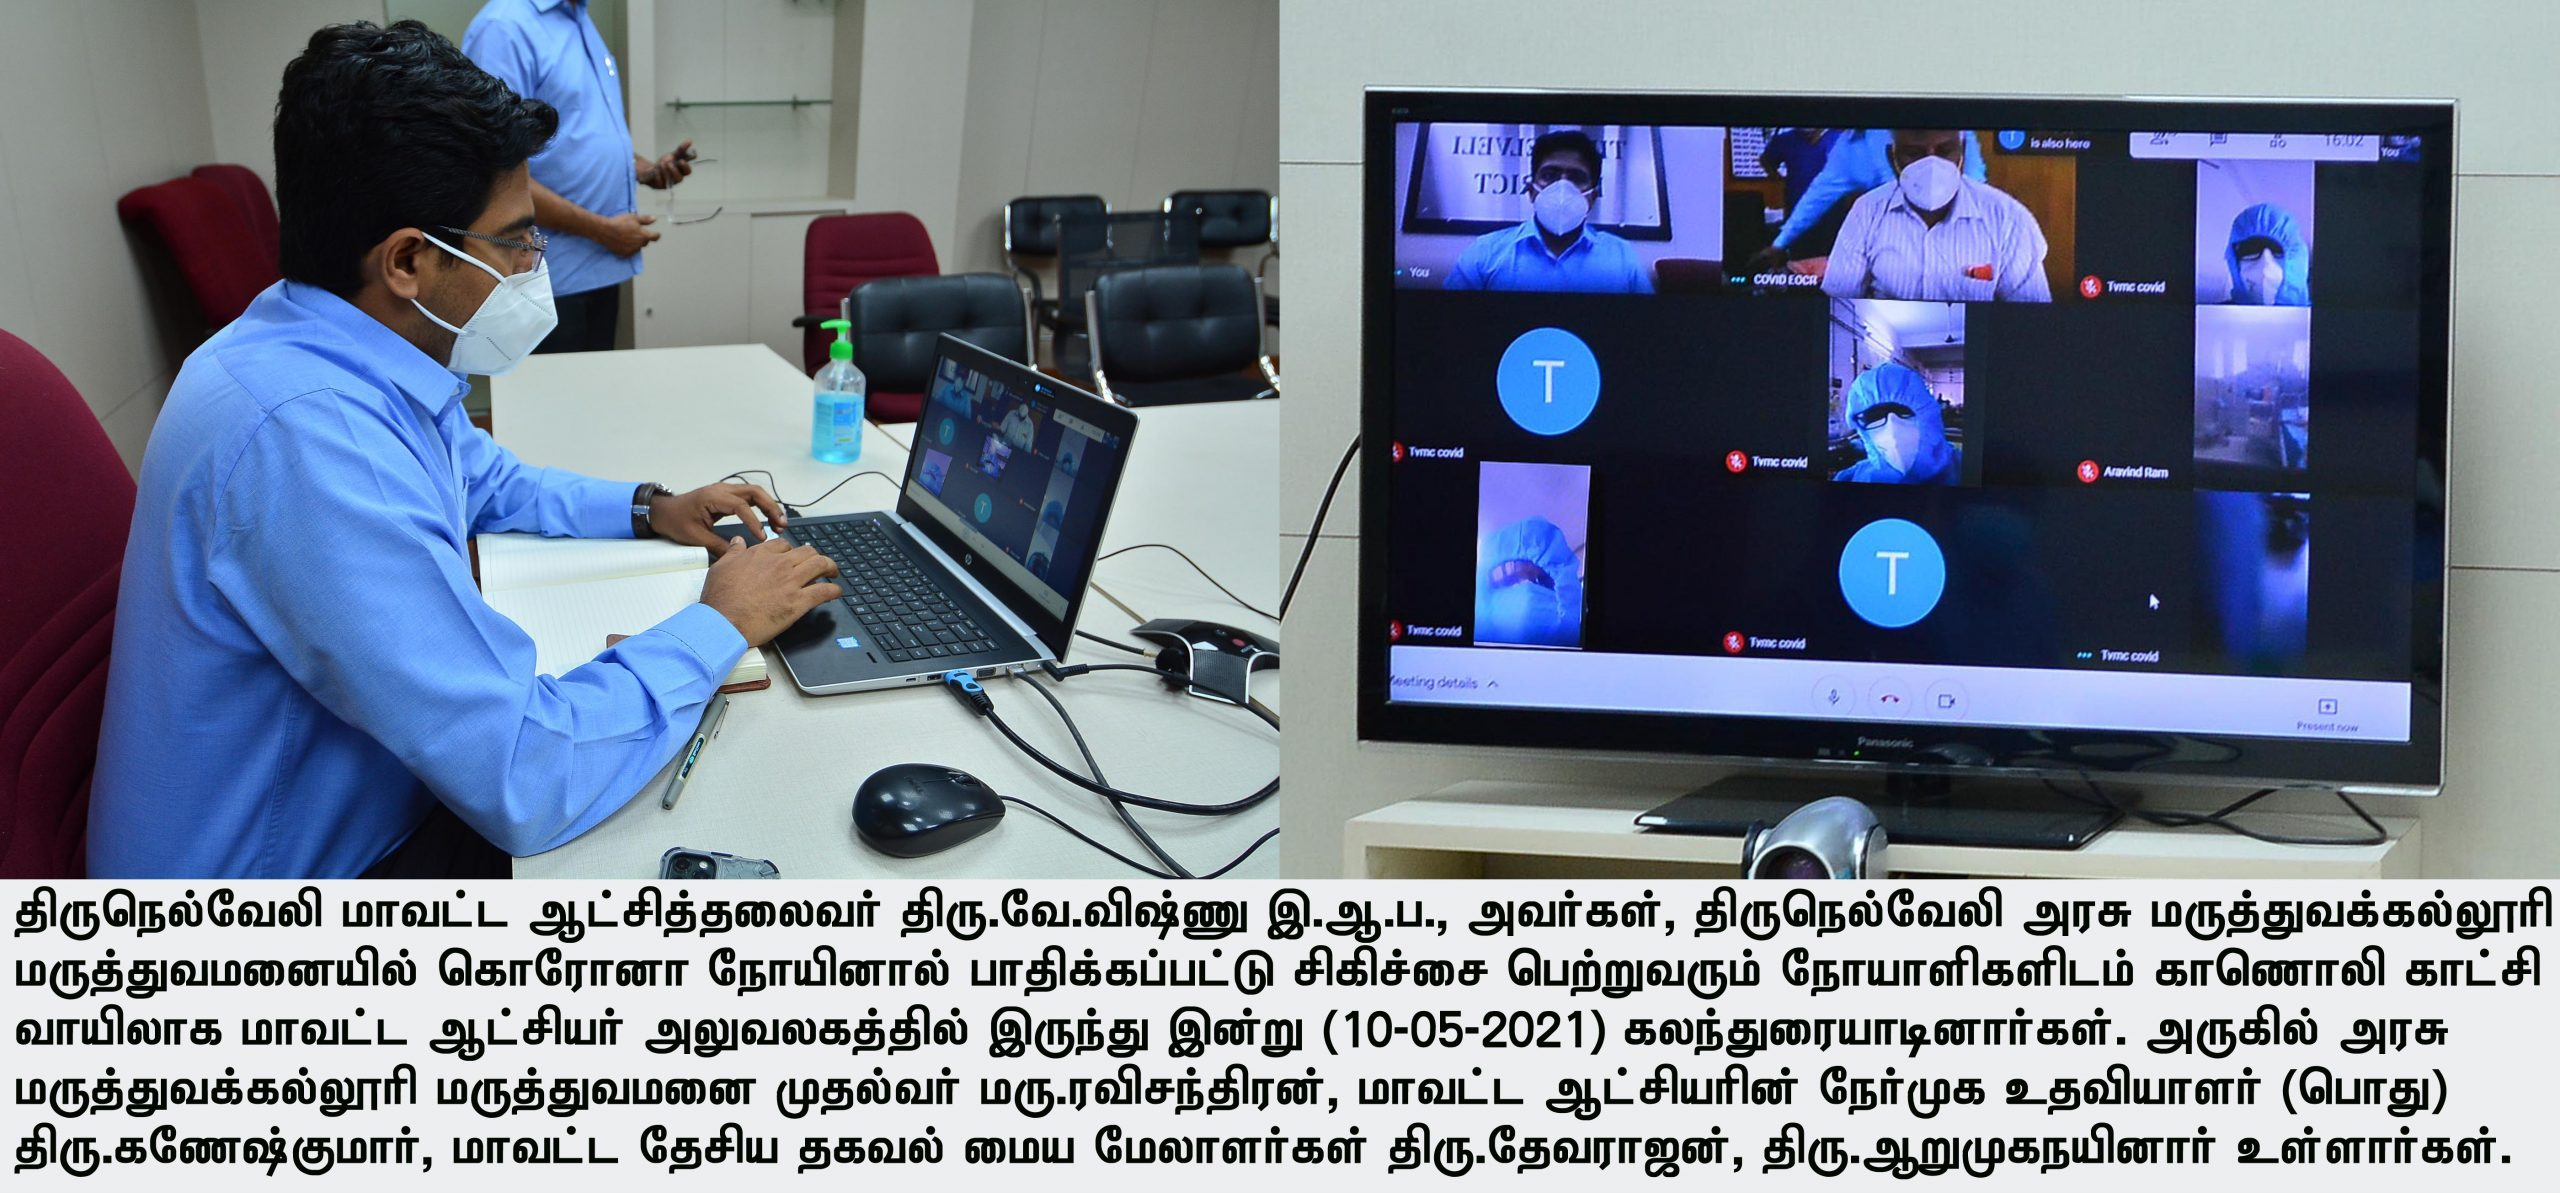 Discussed with the patients at the Government Medical College Hospital through Video Conferencing